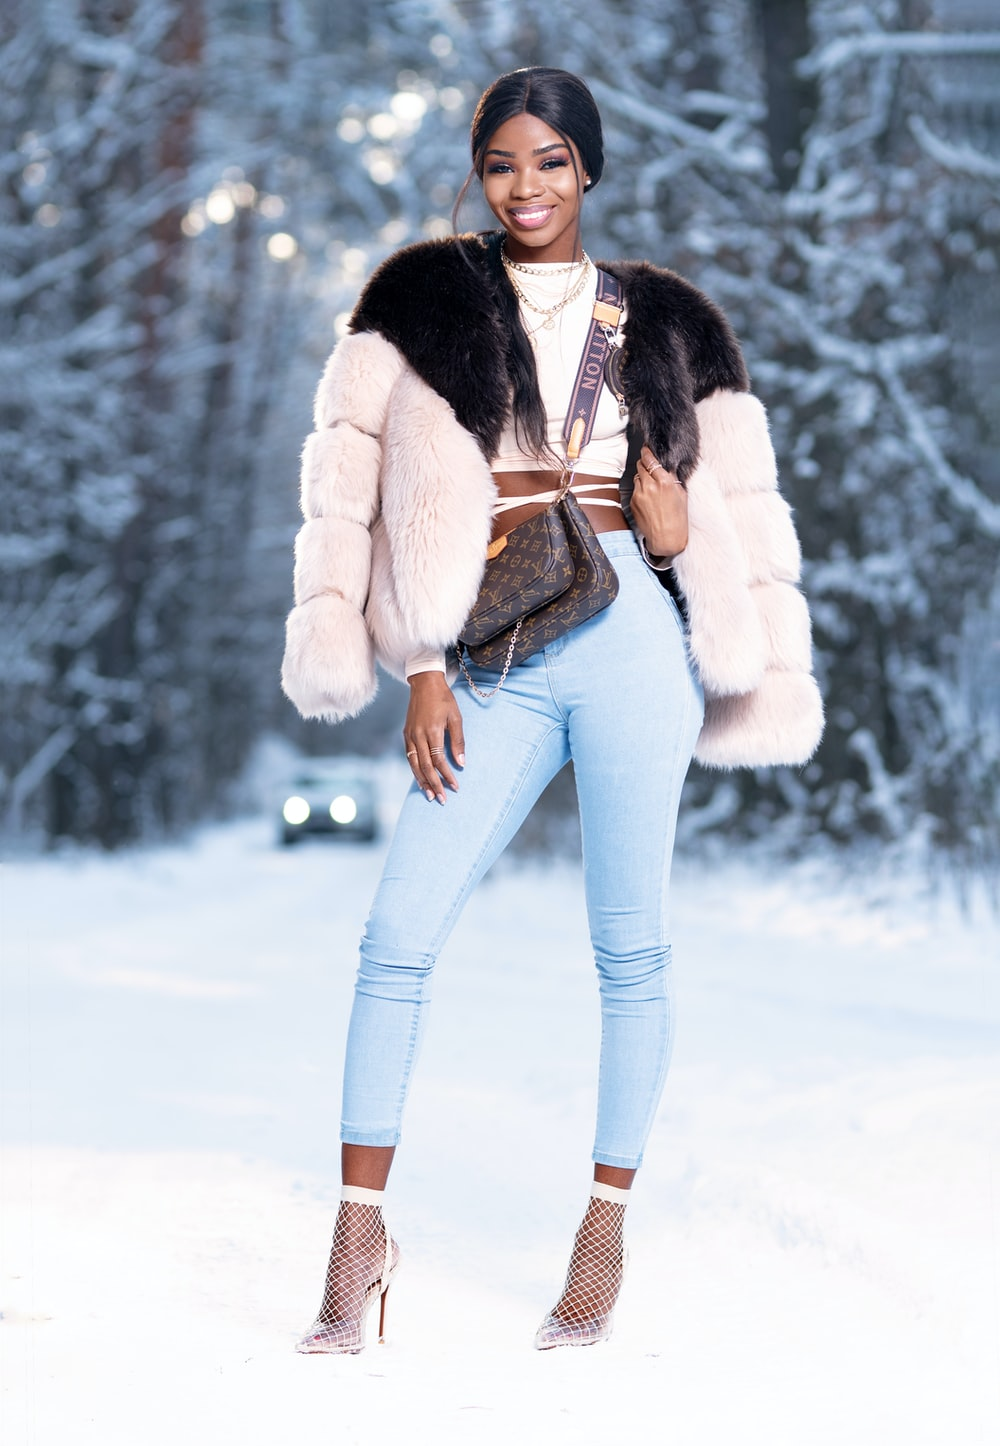 woman in white fur jacket and blue denim jeans standing on snow covered ground during daytime